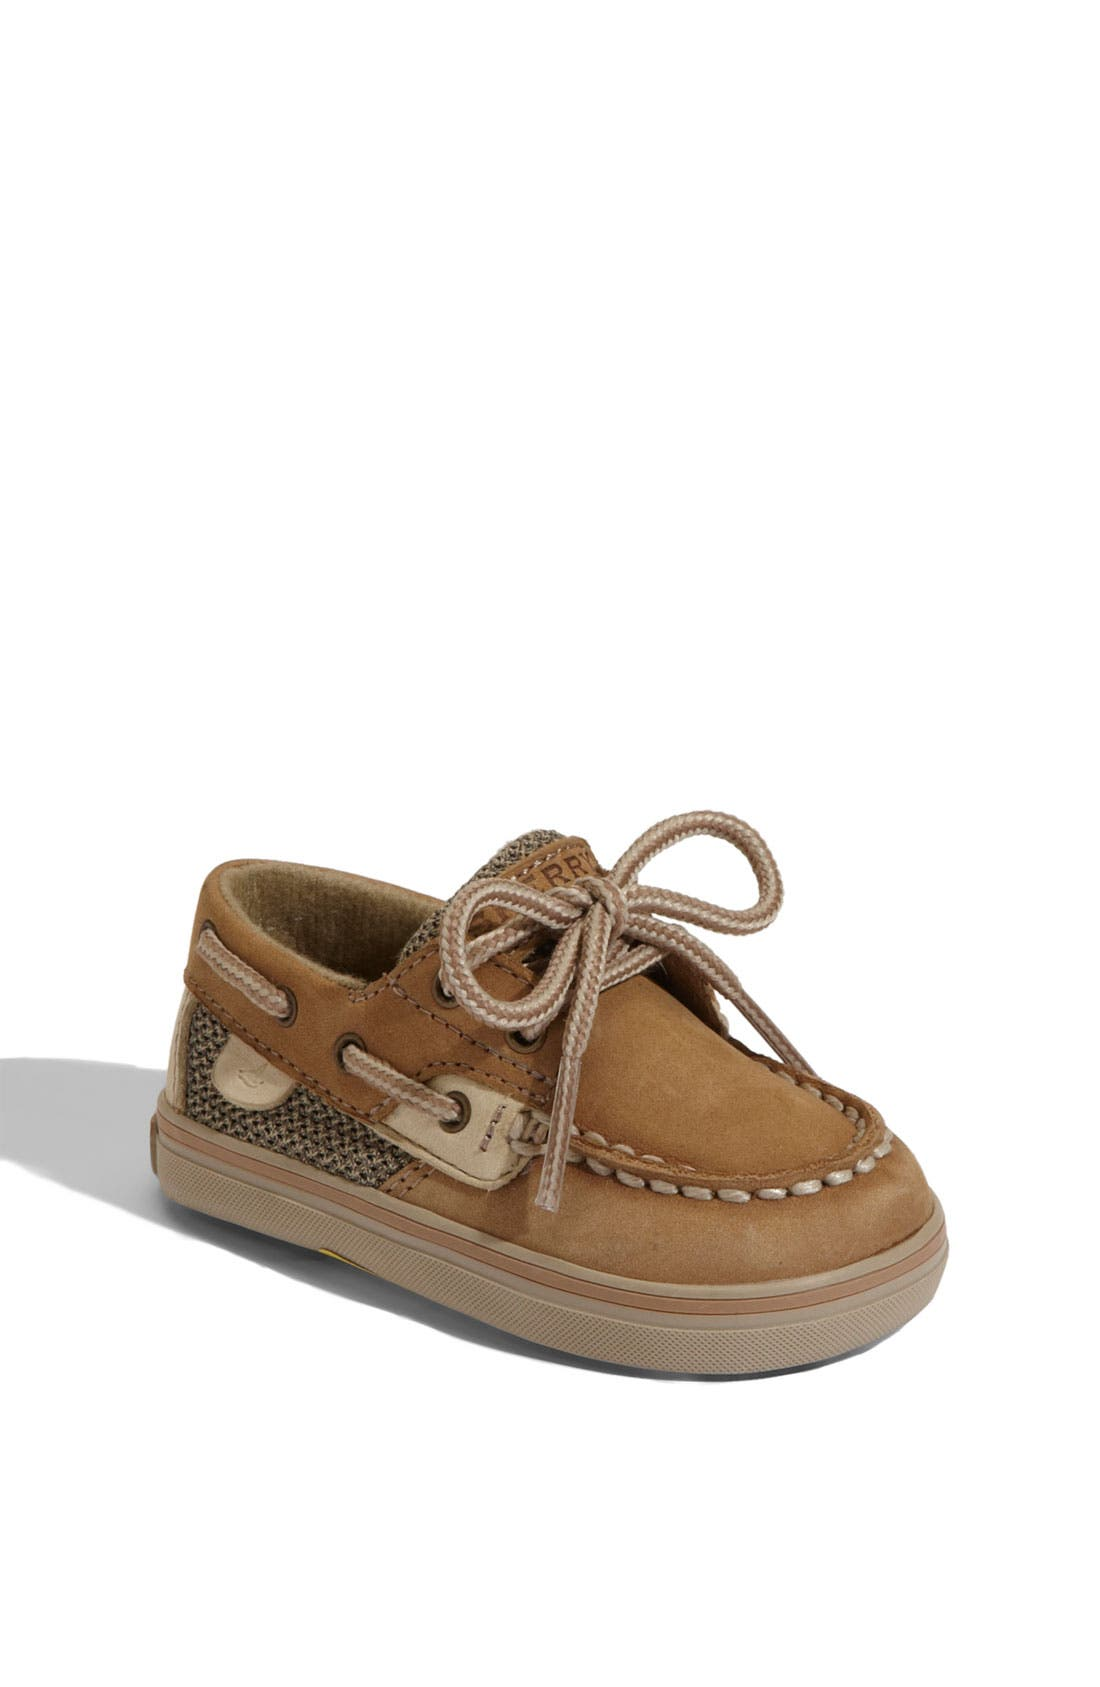 Main Image - Sperry Top-Sider® 'Bluefish' Crib Shoe (Baby)